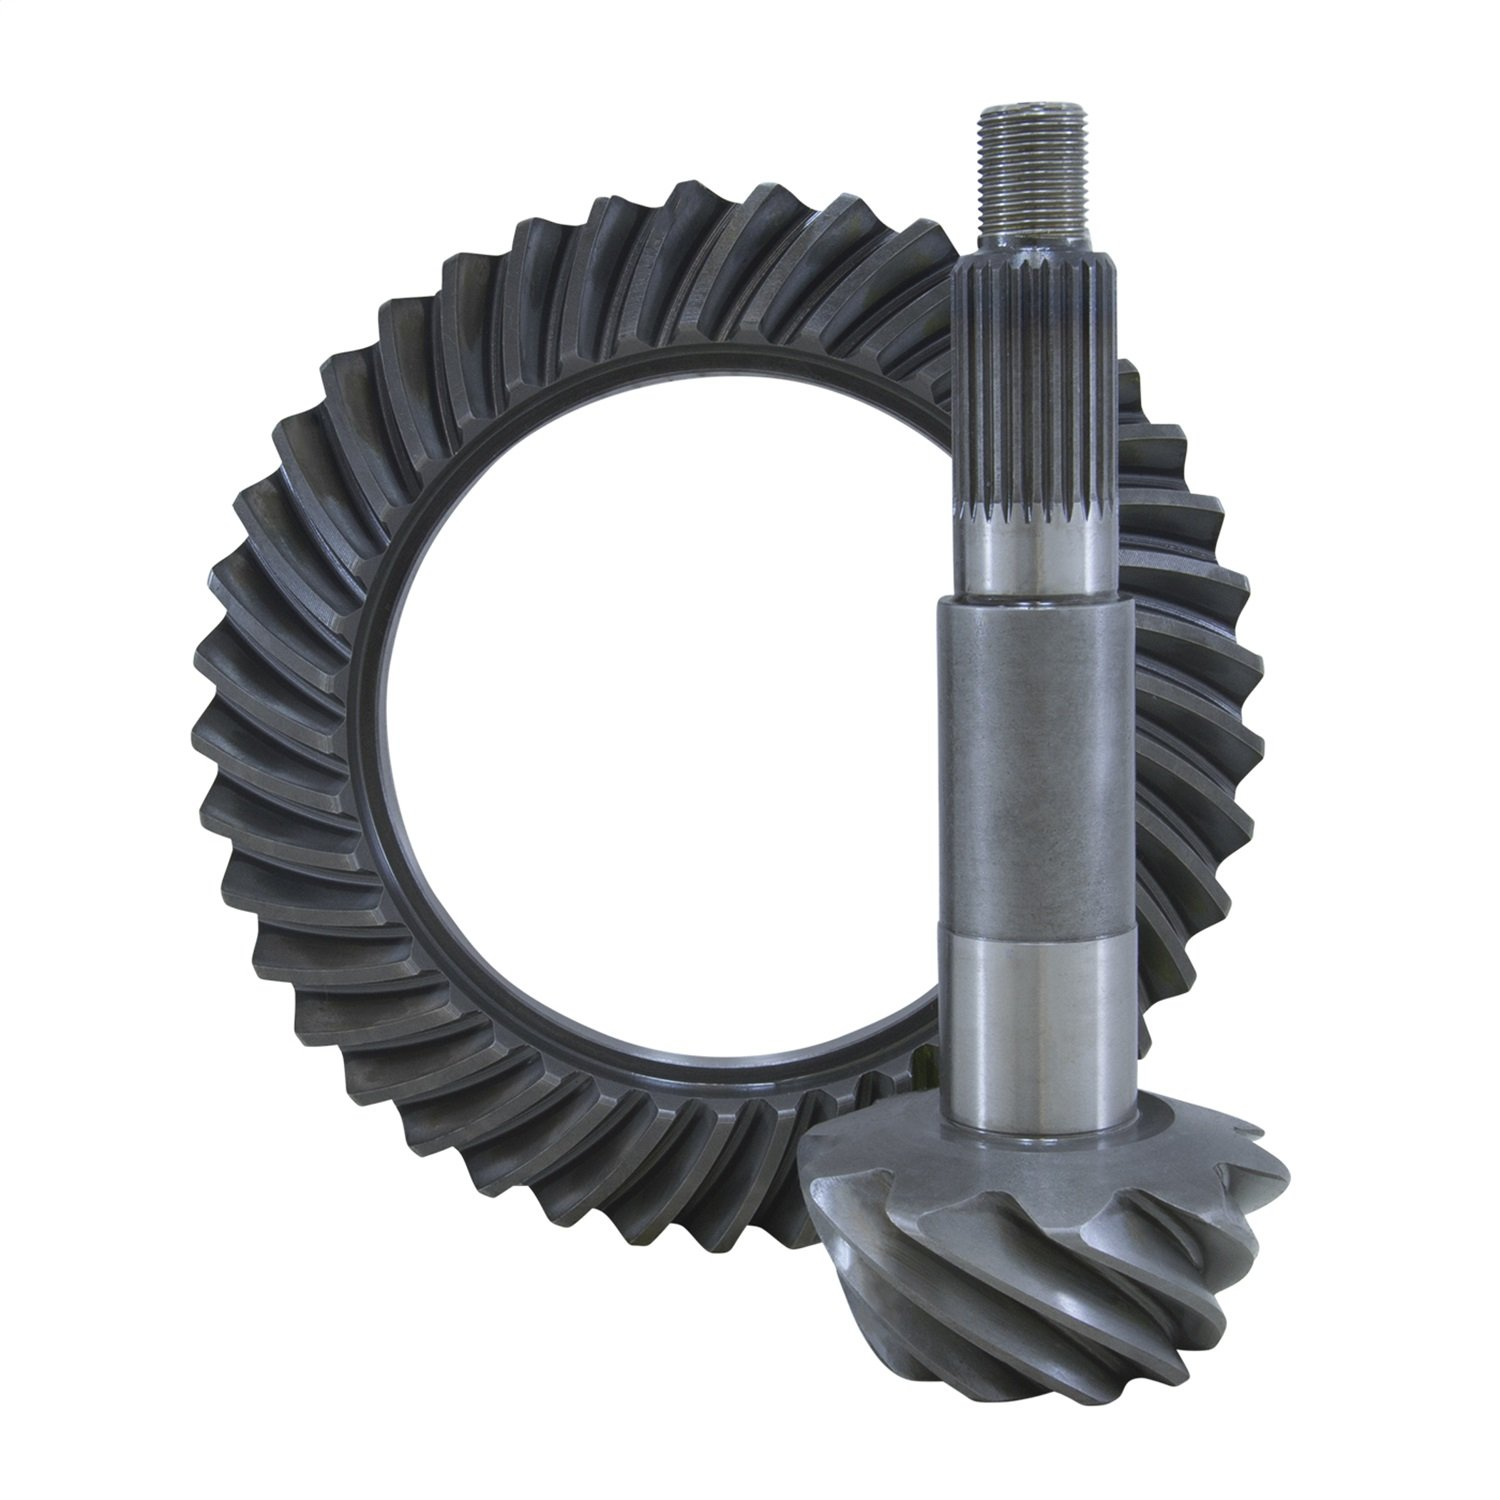 Yukon Gear & Axle (YG D44-488T-RUB) High Performance Ring & Pinion Gear Set for Jeep TJ Rubicon Dana 44 Differential